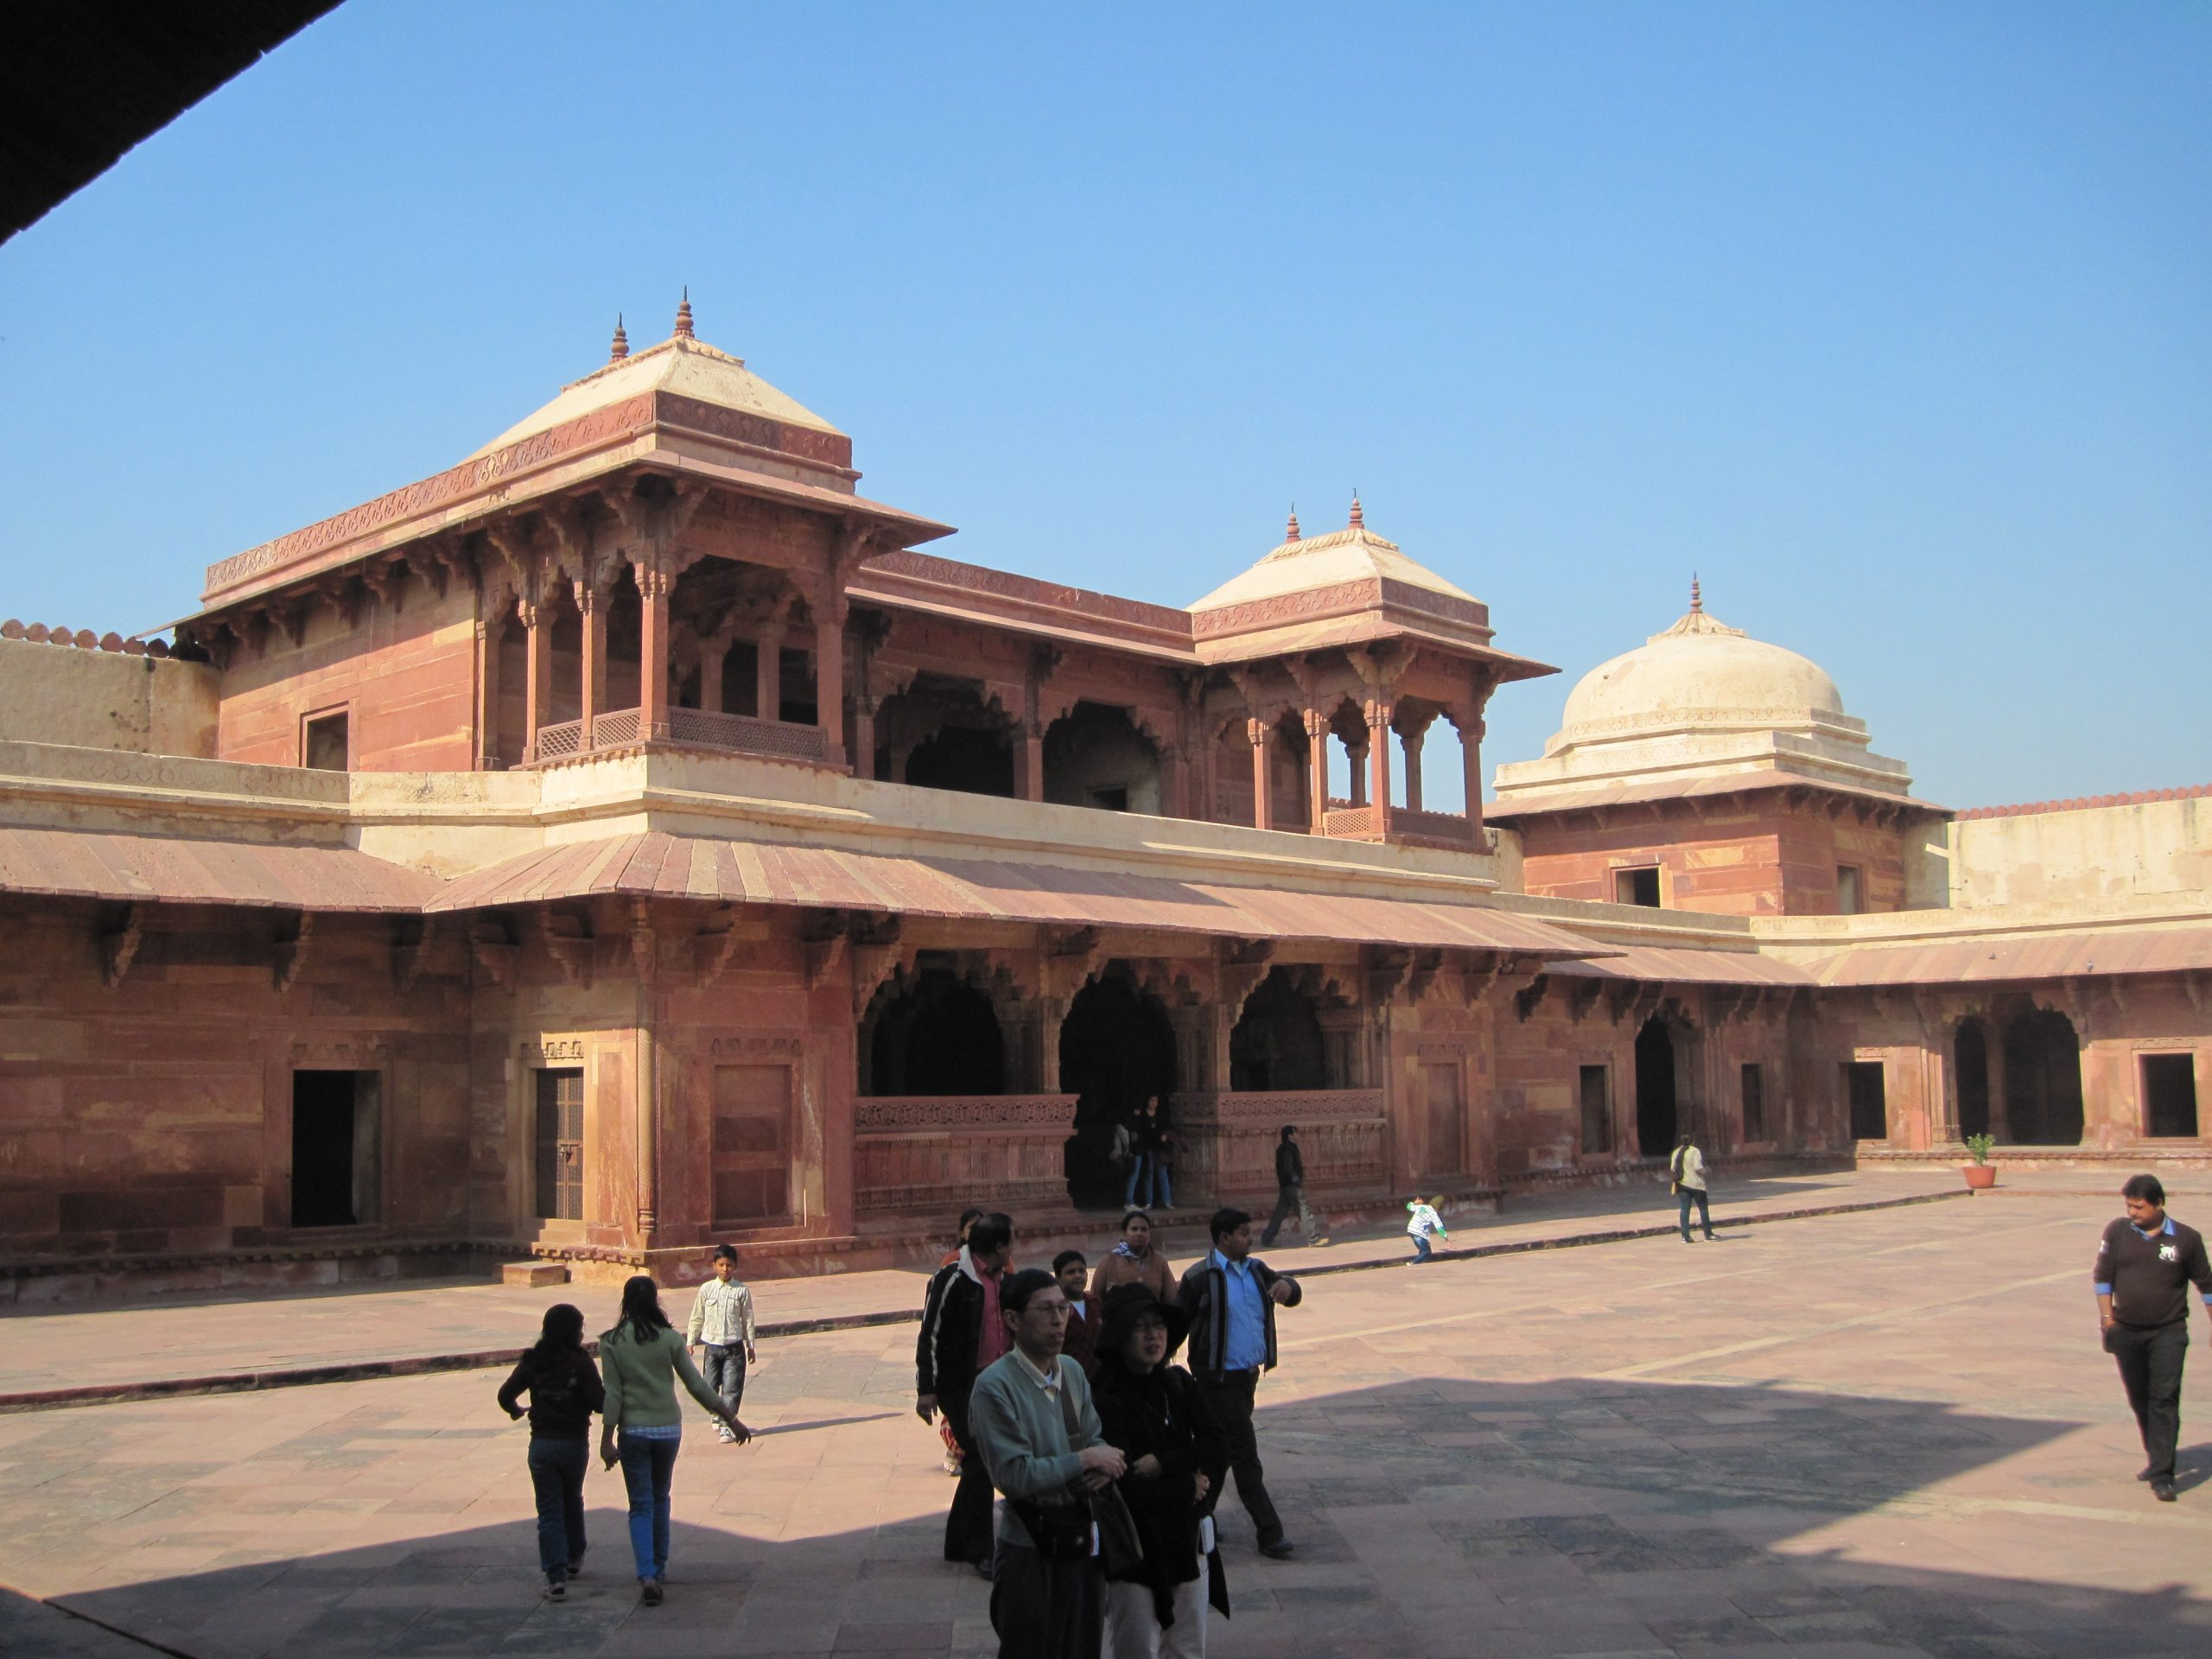 Amazing Sightseeing Place in Agra-Jodha Bai's Palace